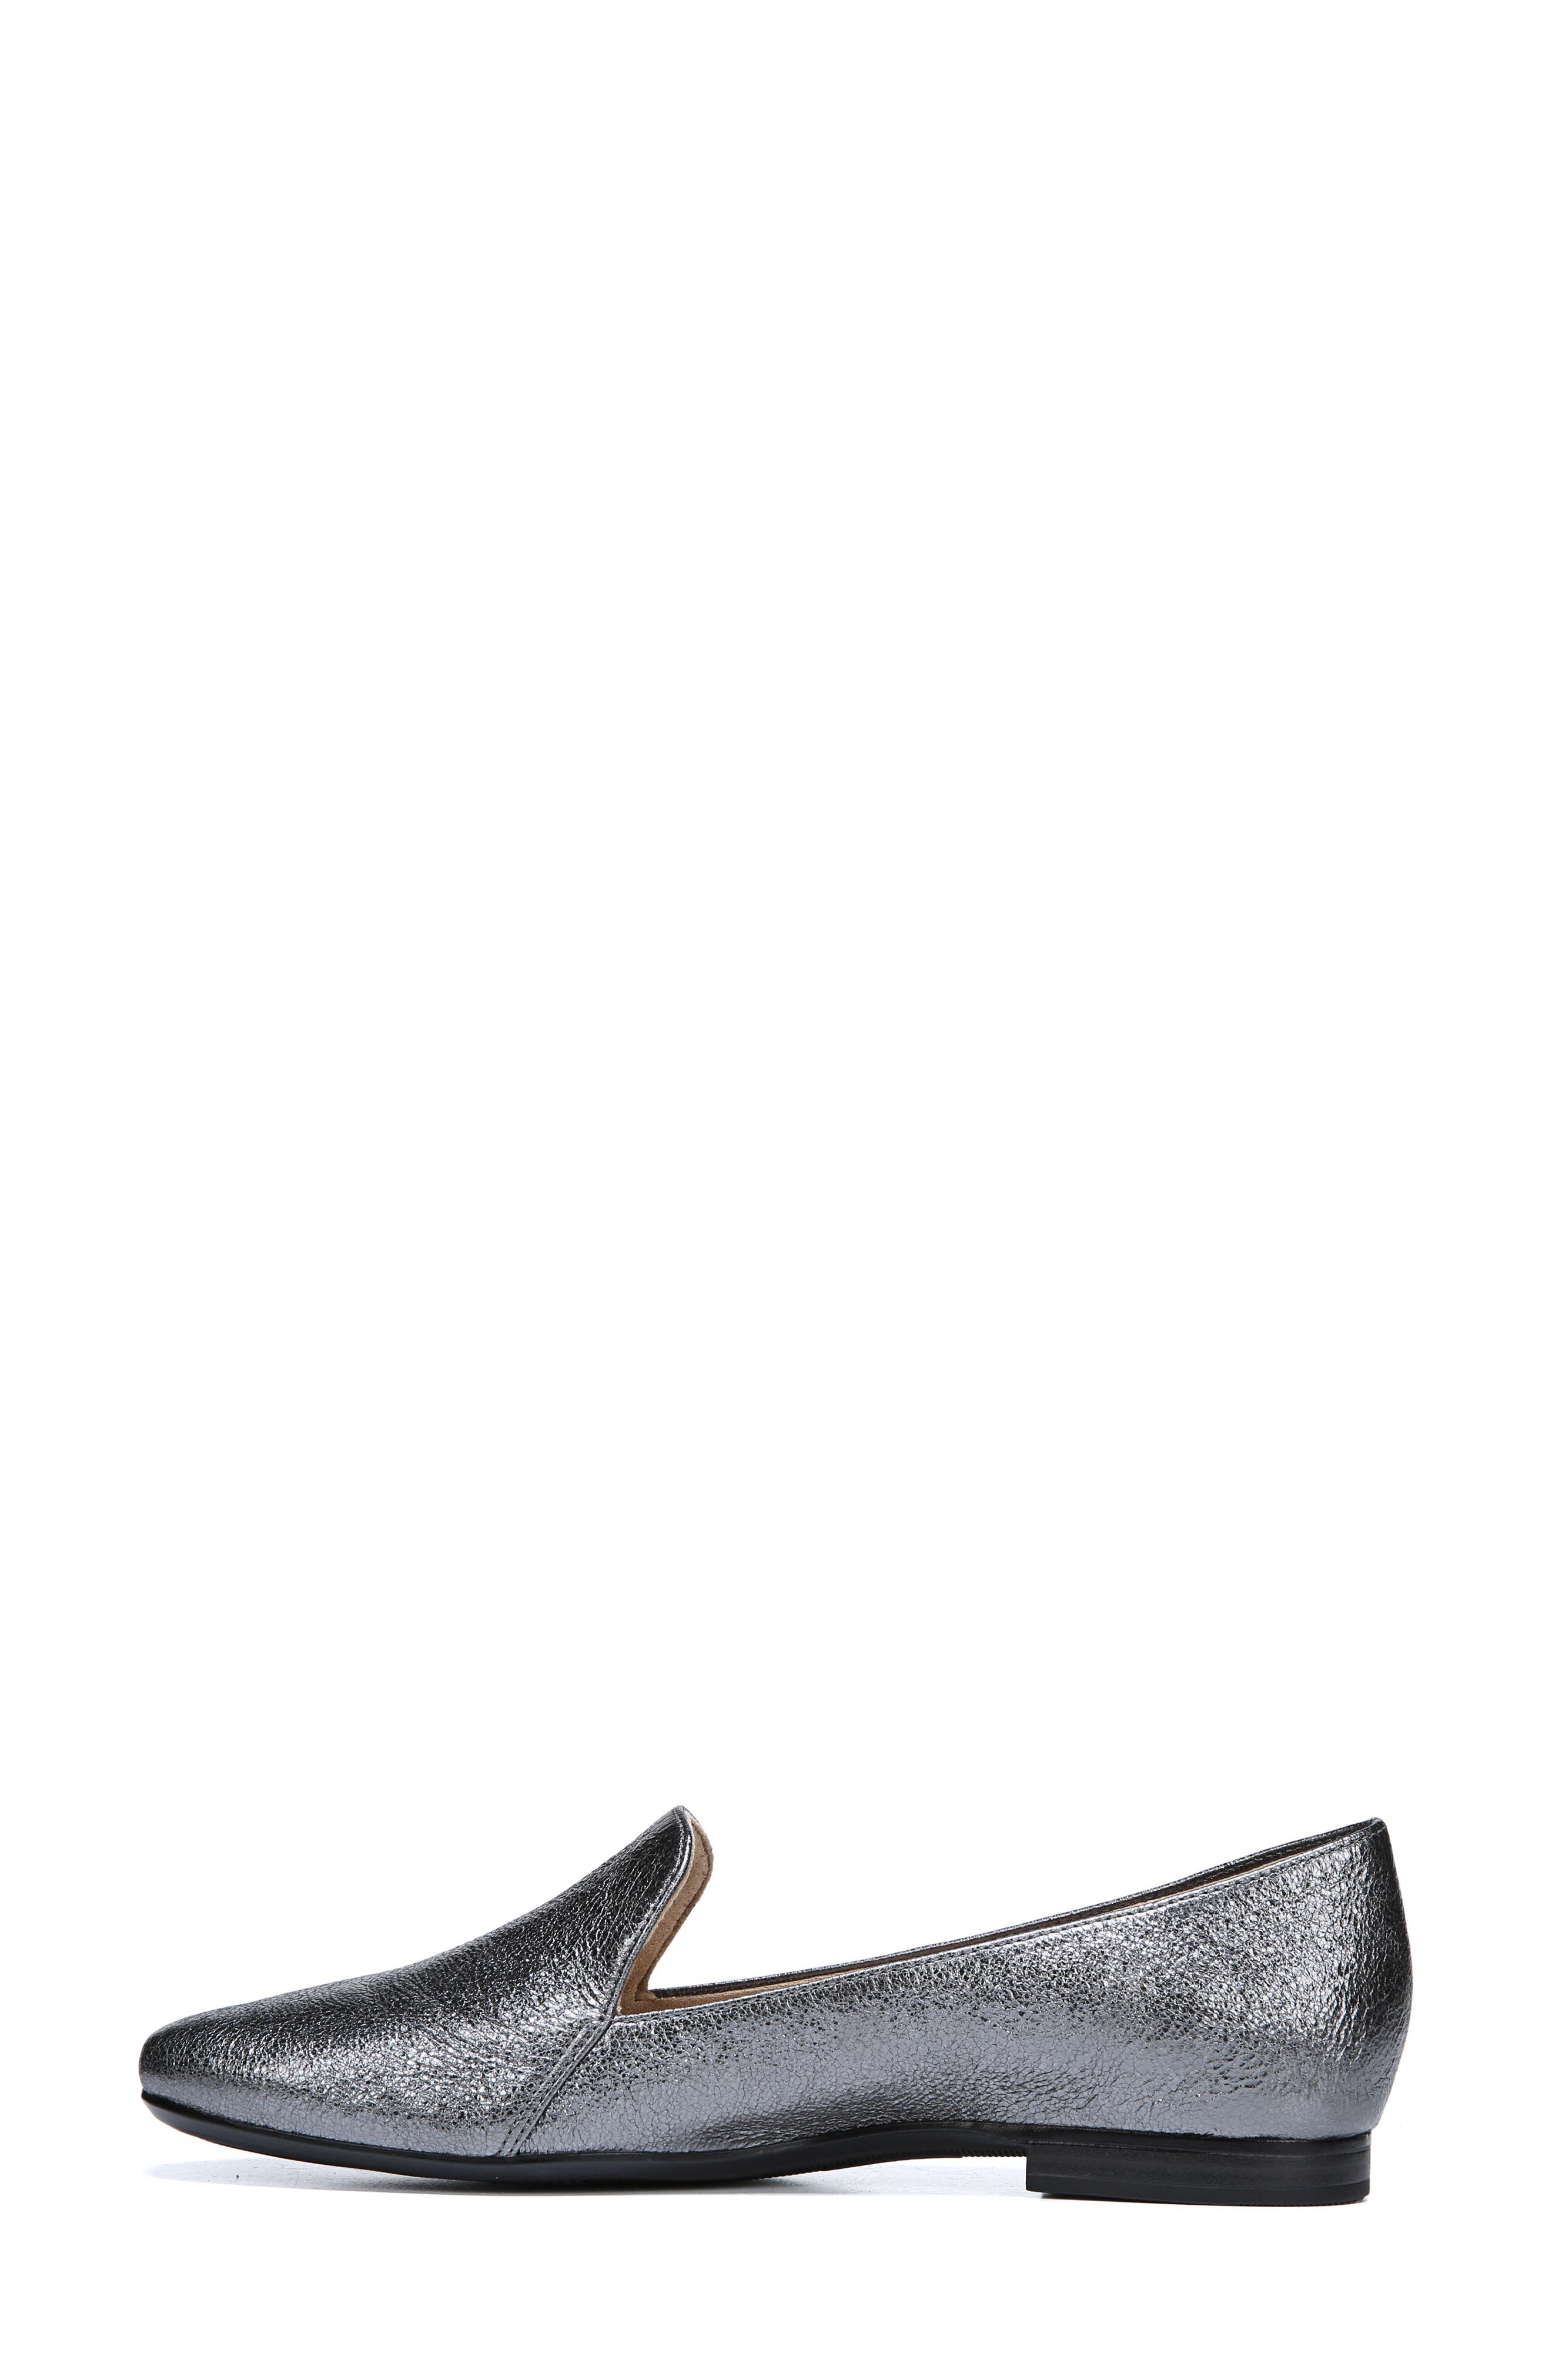 Emiline Flat Loafer,                             Alternate thumbnail 7, color,                             PEWTER LEATHER